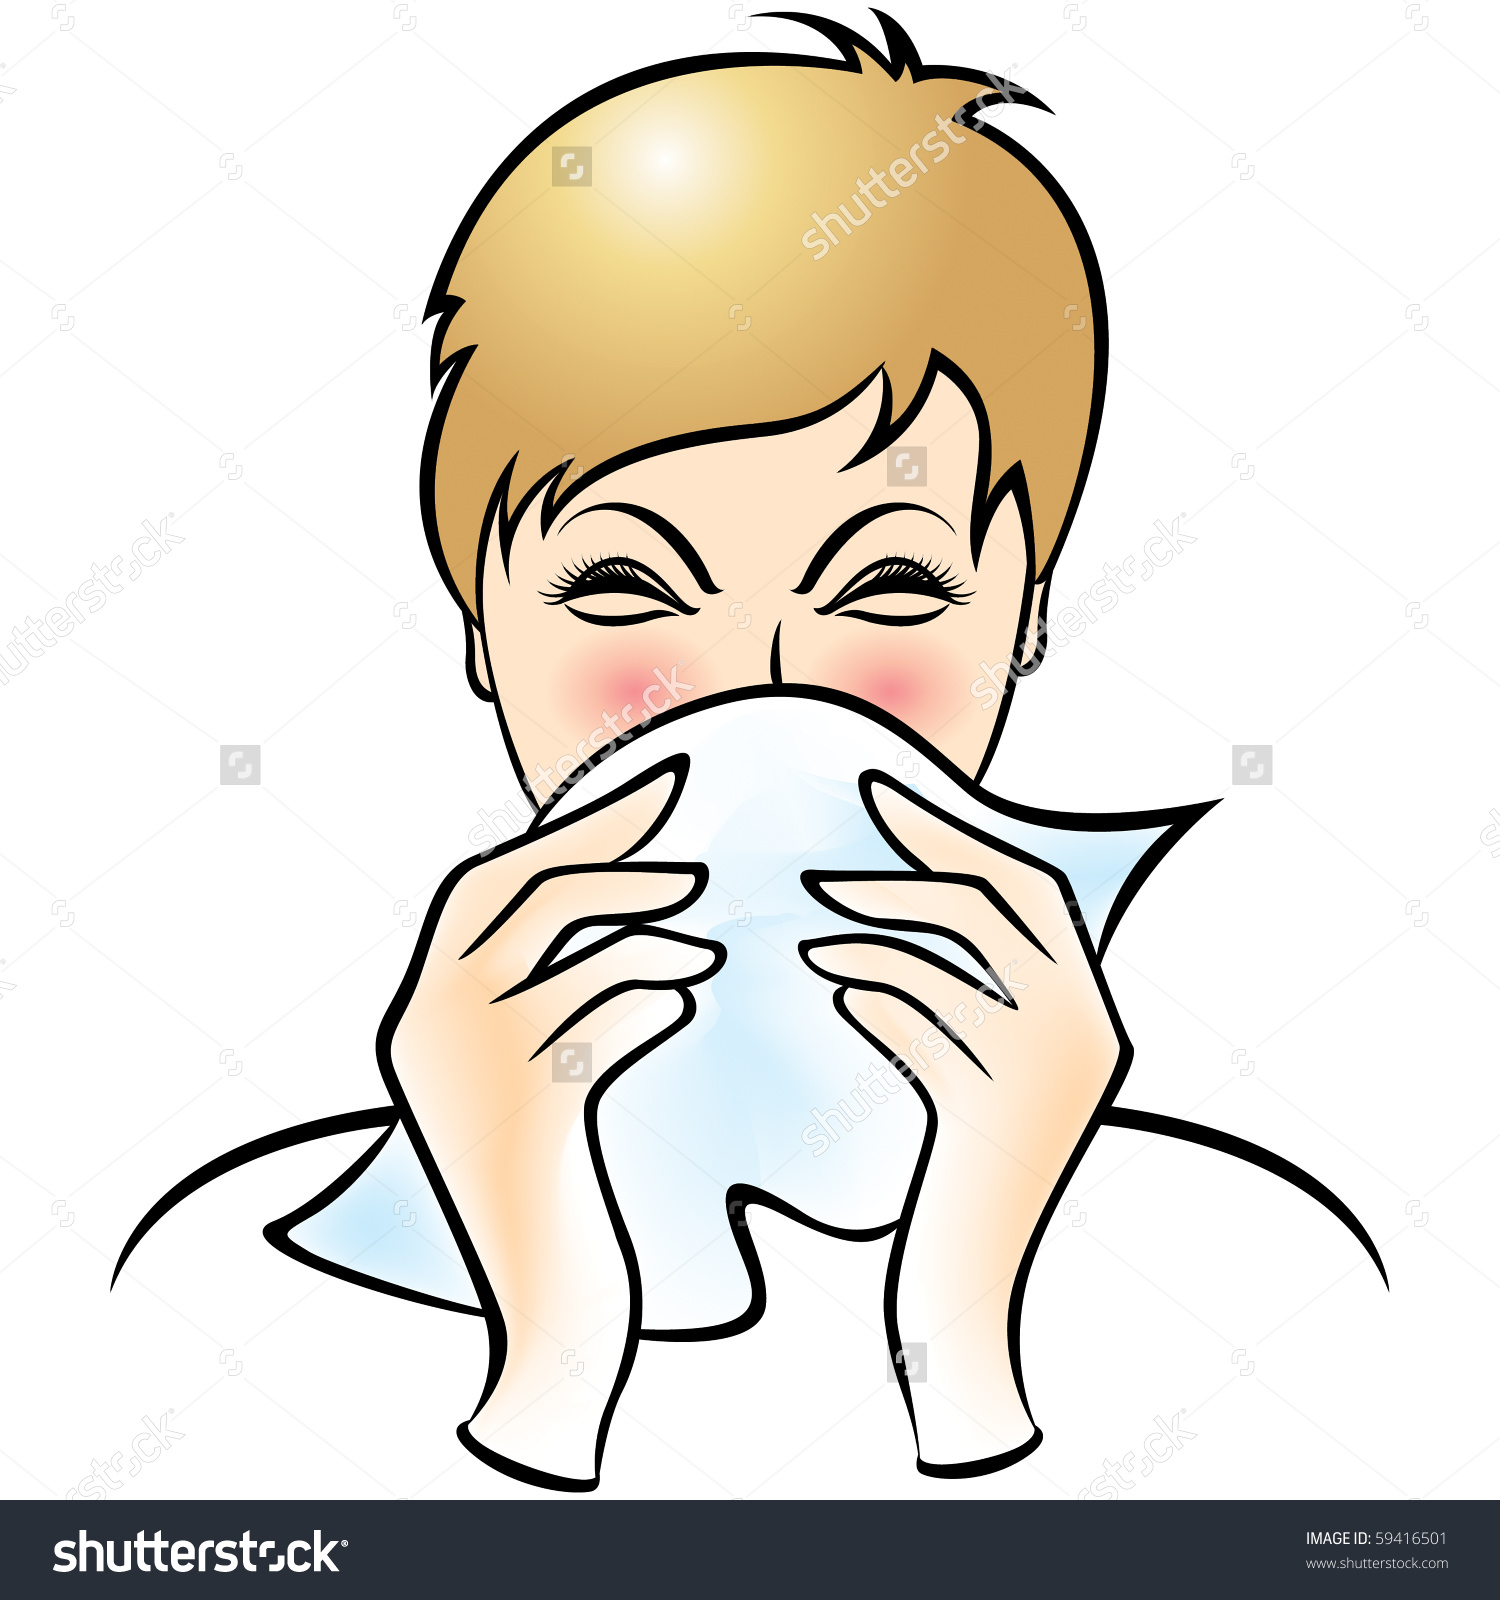 Cover cough clipart jpg transparent stock Cover Your Cough Stock Vector 59416501 - Shutterstock jpg transparent stock